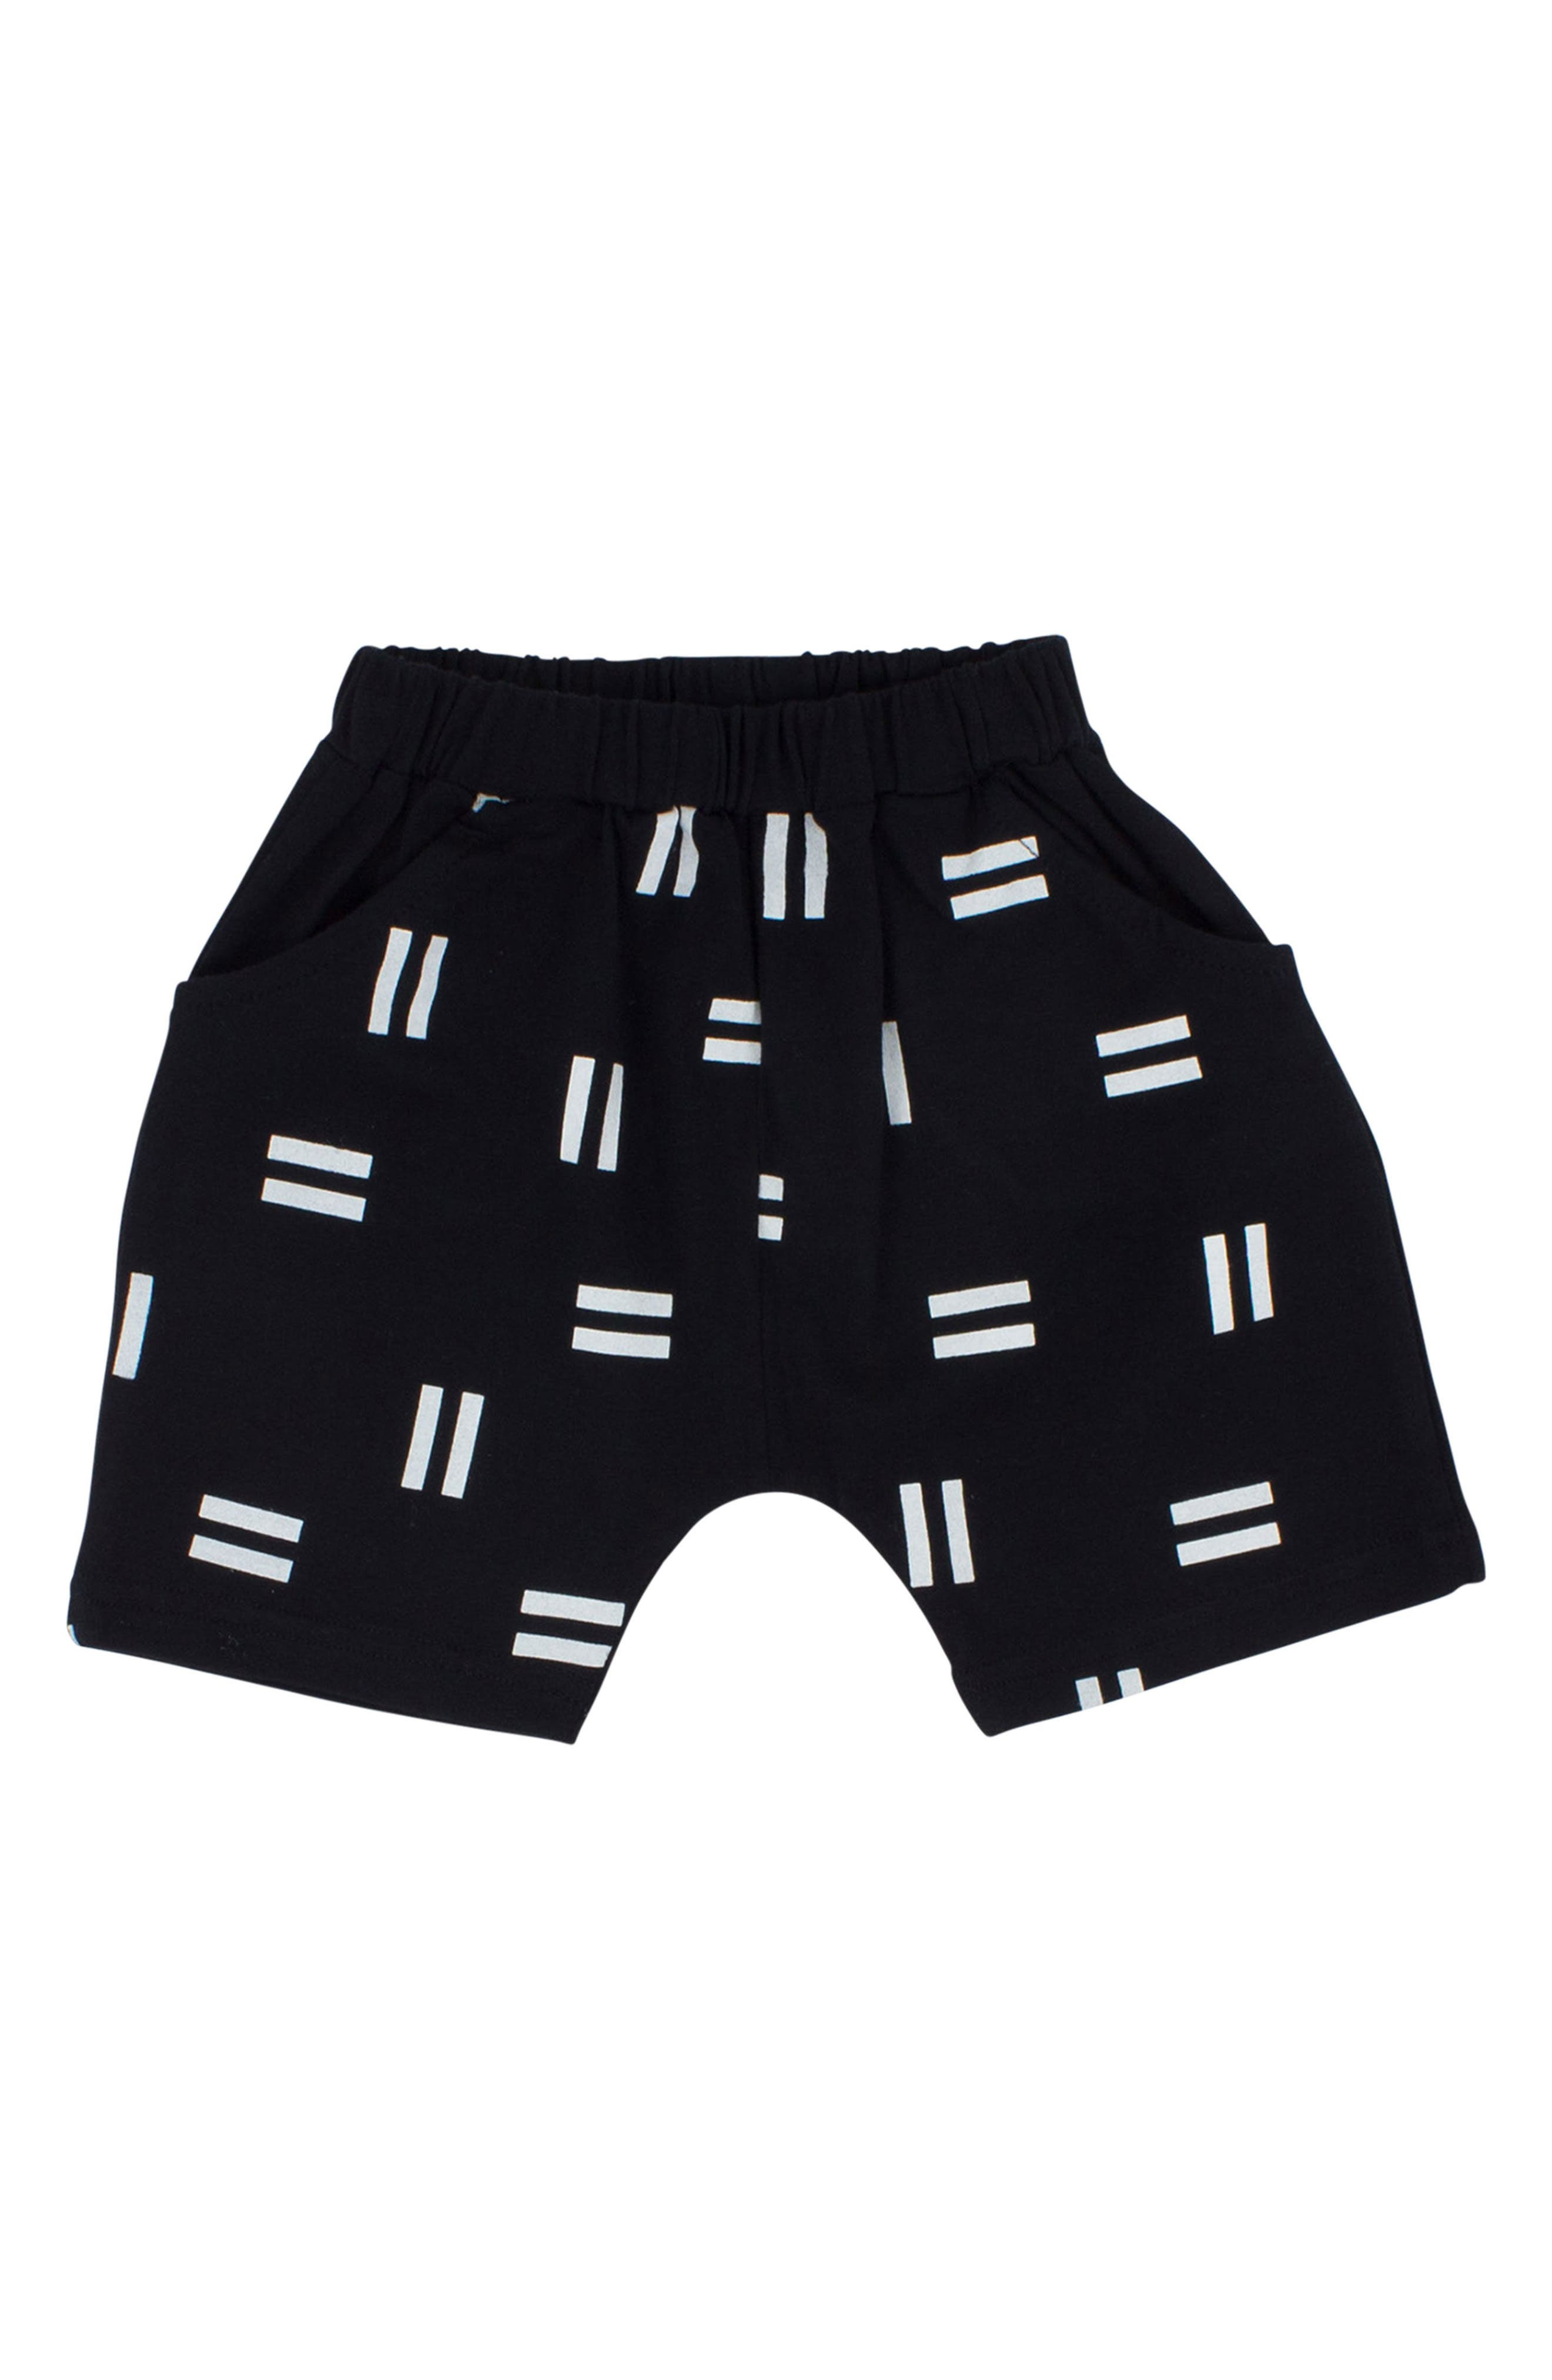 Pause Relaxed Shorts,                         Main,                         color, Black